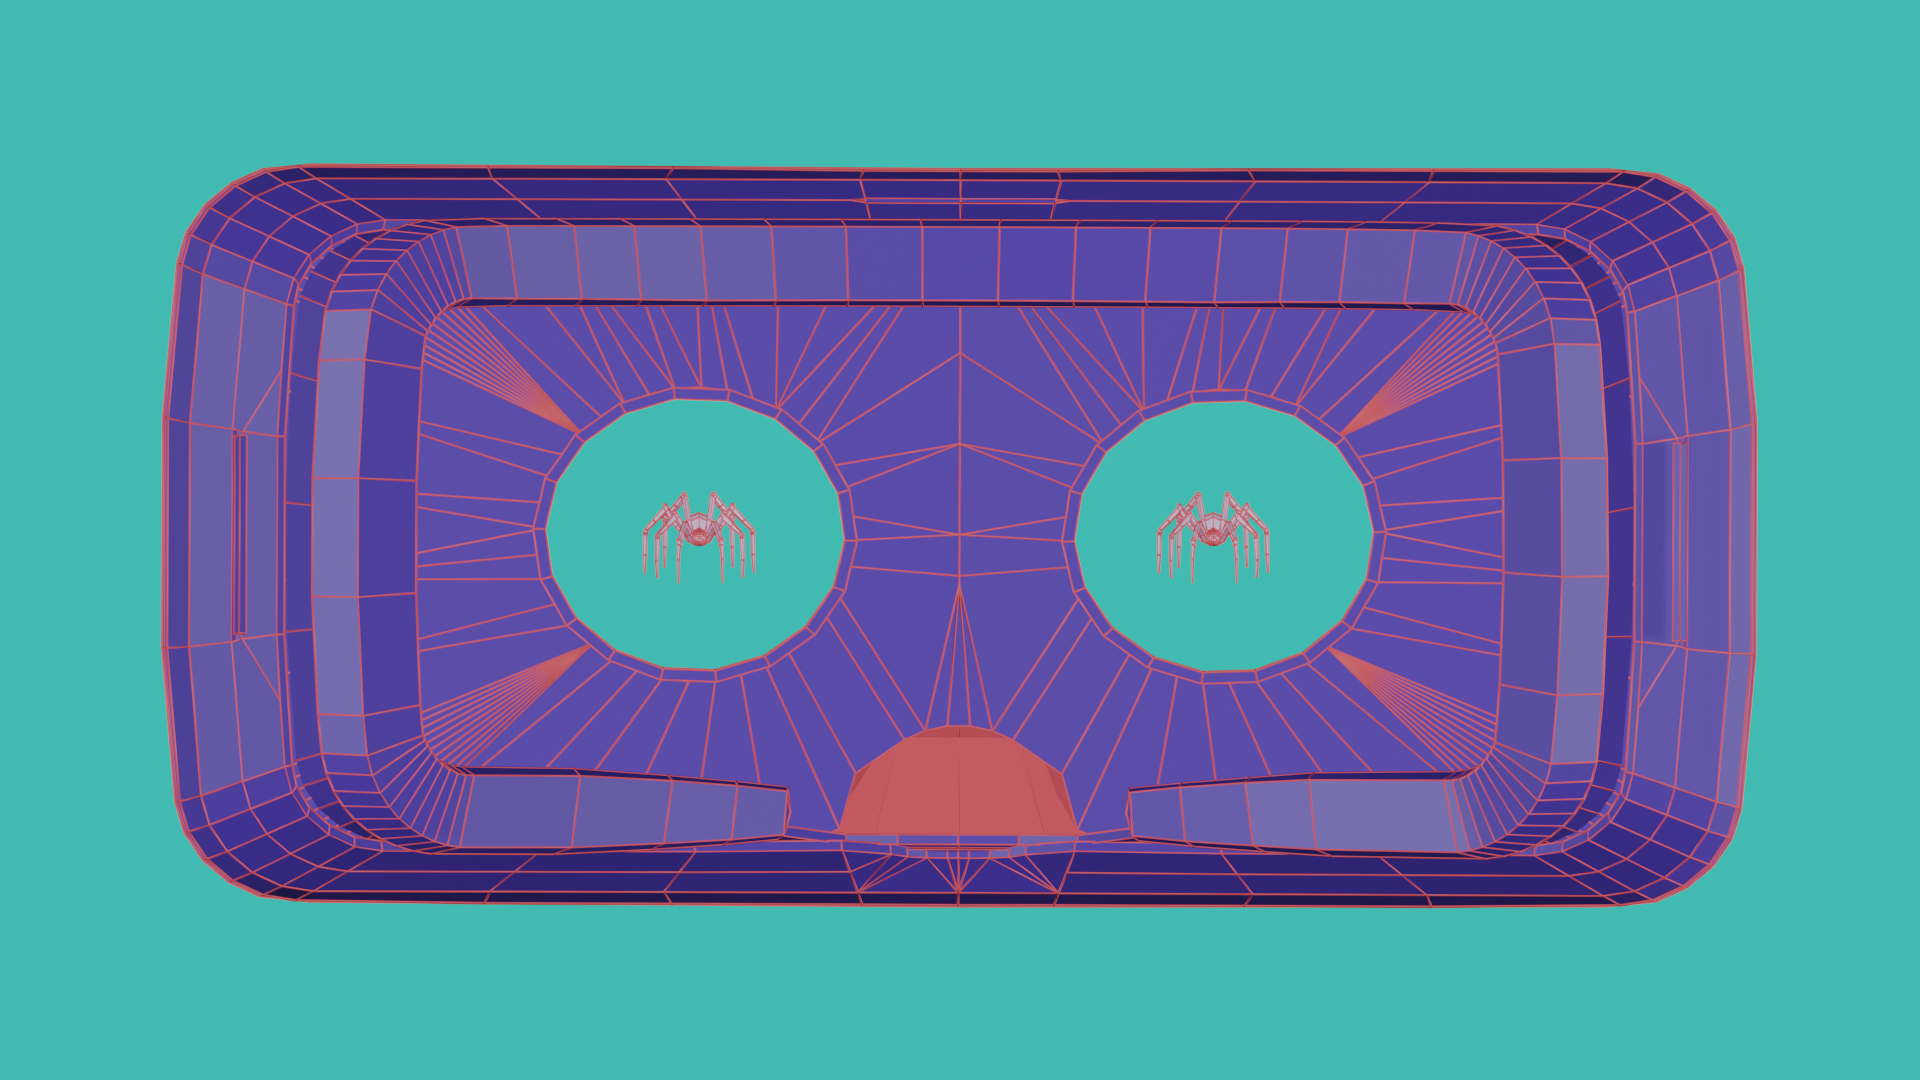 Two digital spiders viewed through the lenses of a VR headset. The headset appears like a cartoon face of fear.